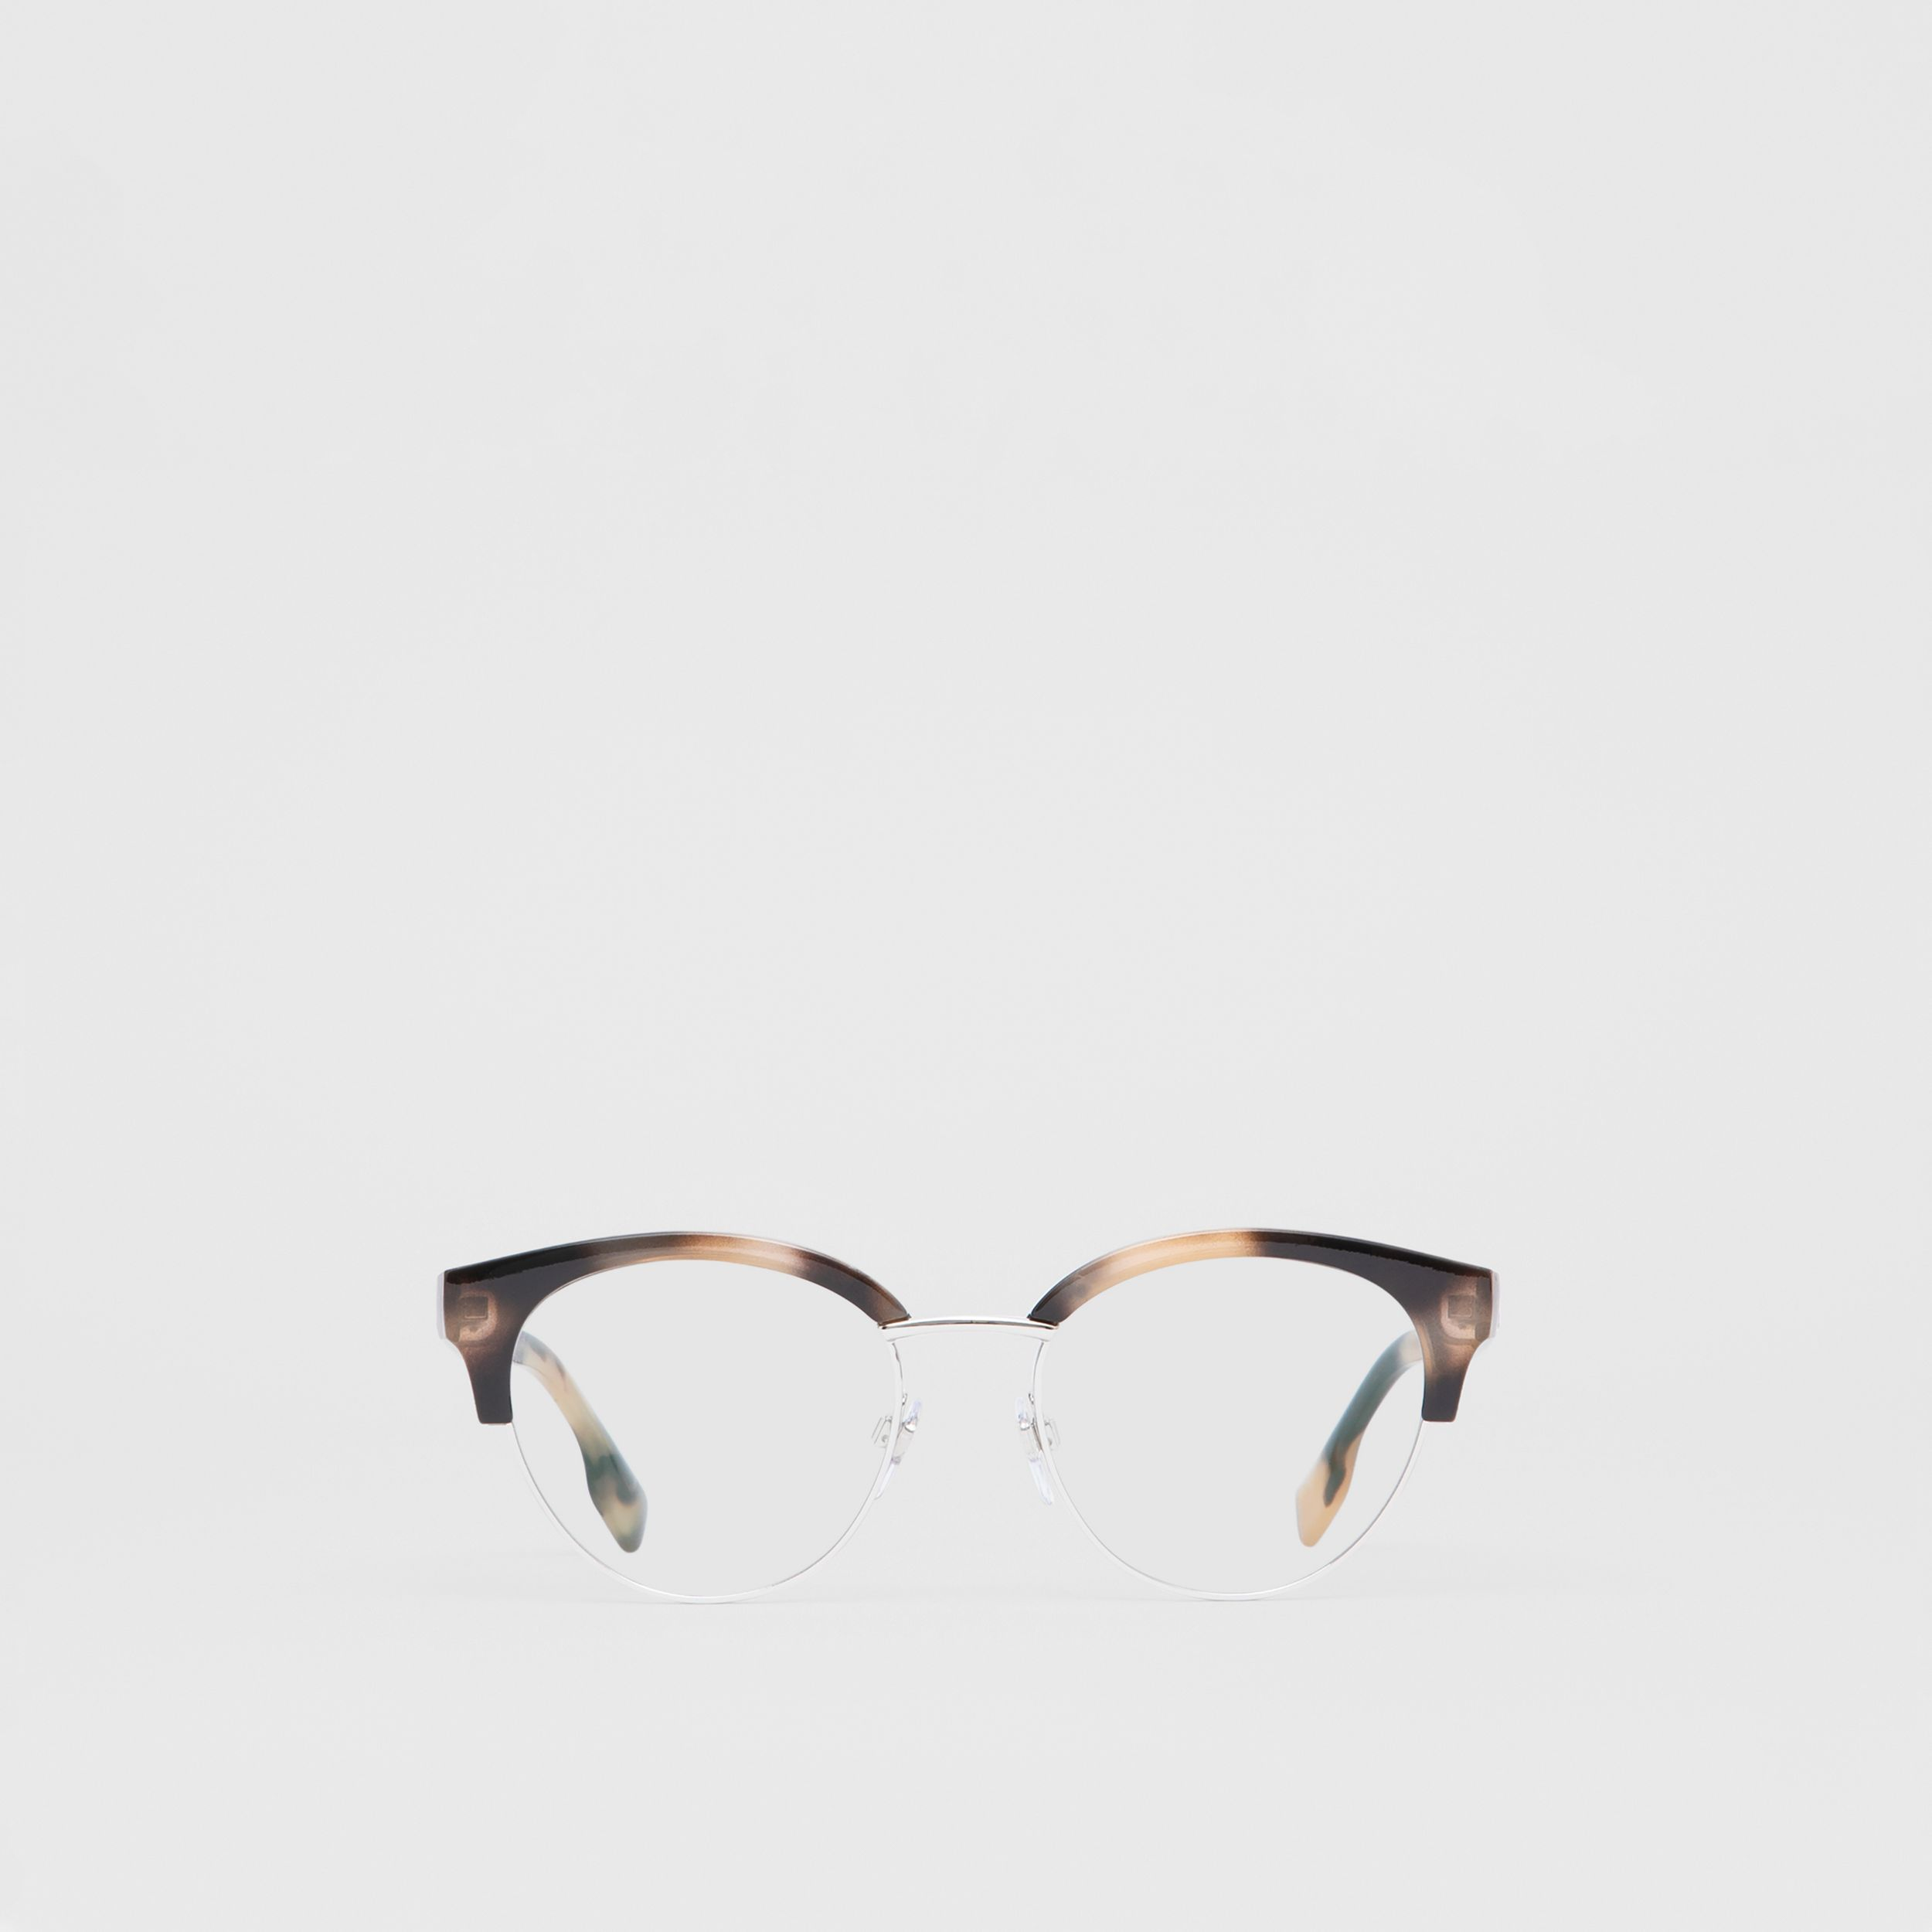 Cat-eye Optical Frames in Bright Tortoiseshell - Women | Burberry Hong Kong S.A.R. - 1